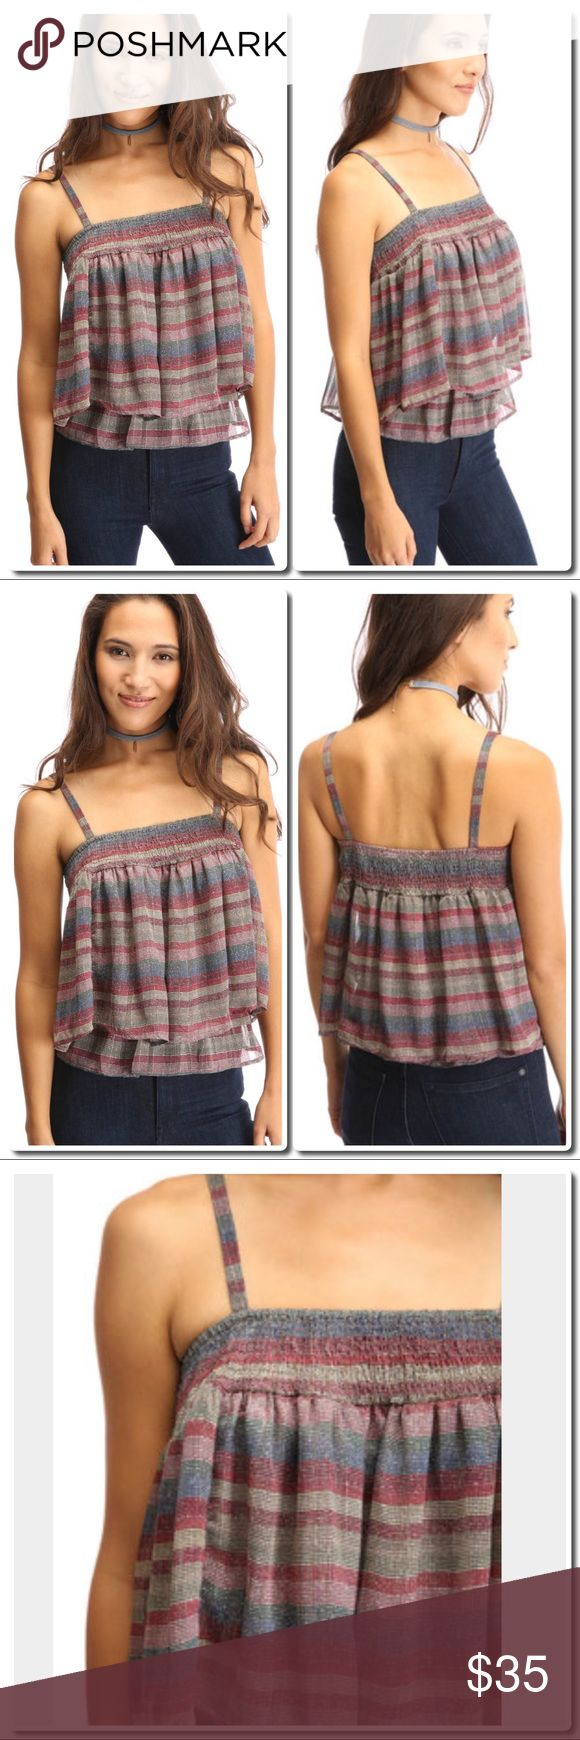 """Double Layer Stripe Top Trendy and sexy, but also playfully sweet, this double layered top lends a colorfully striped shell, smocked bodice, subtle metallic details, and relaxed fit.   Double layer top Multi colored striped print Subtle metallic details Relaxed fit 98% polyester / 2% metallic Dry clean recommended Measures approximately 24"""" from shoulder Model shown wearing size small (S) Tops Tank Tops"""